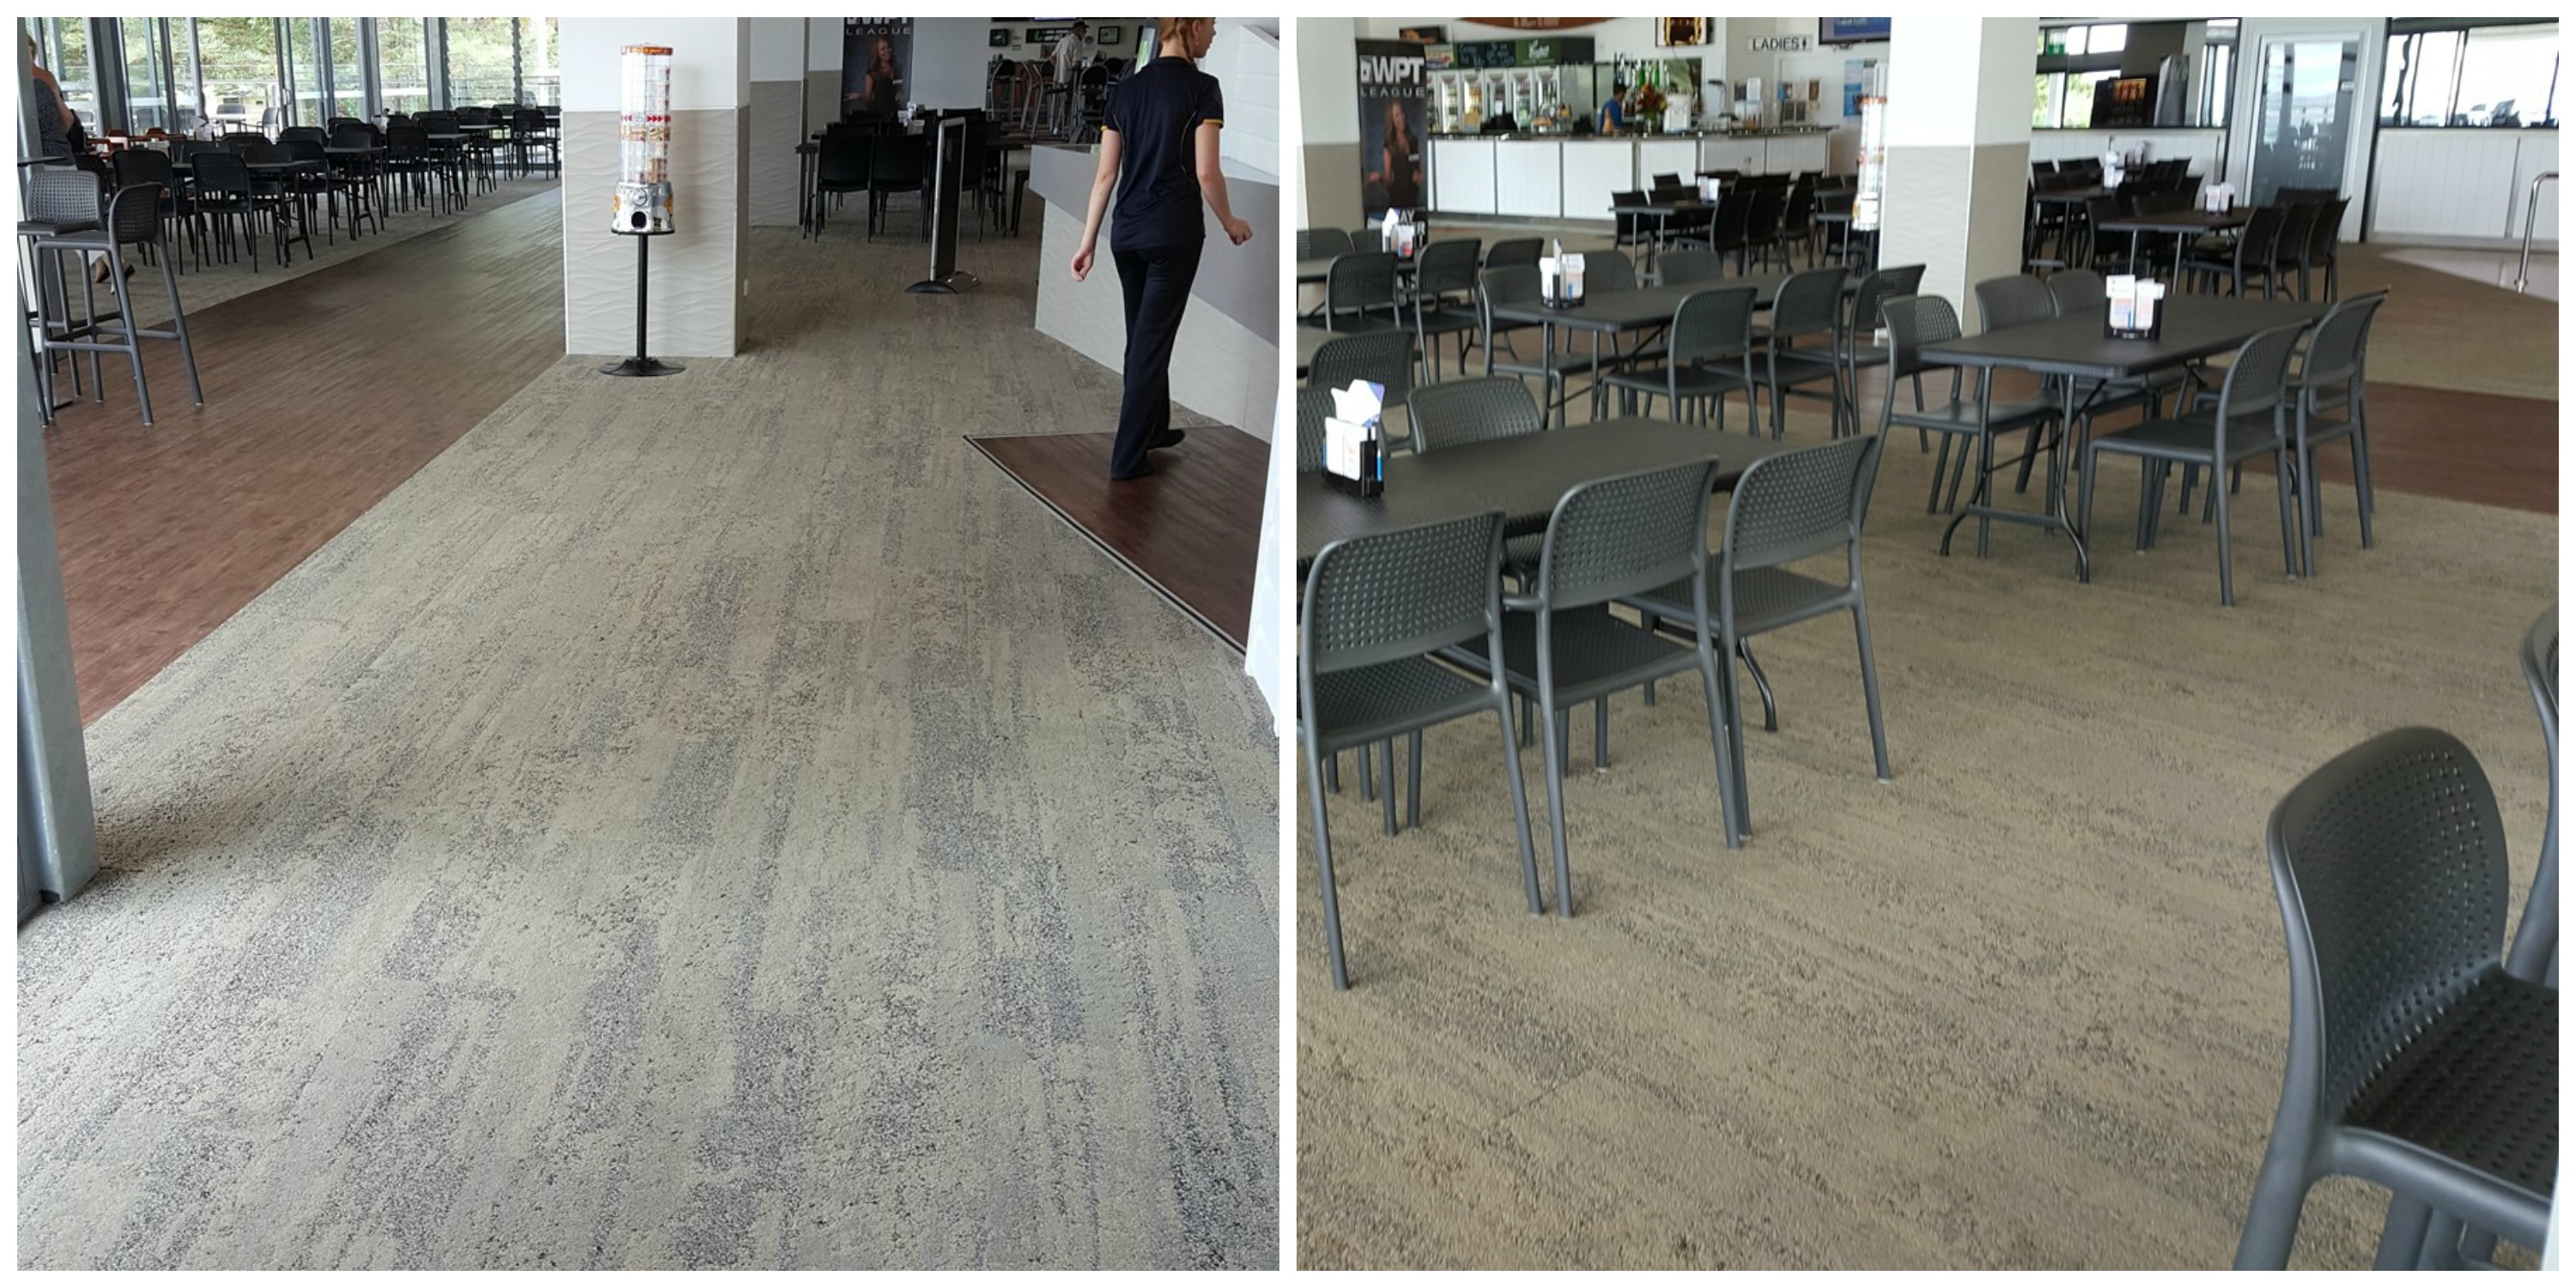 New commercial flooring, club carpet, vinyl planks, carpet planks, Master Flooring solutions